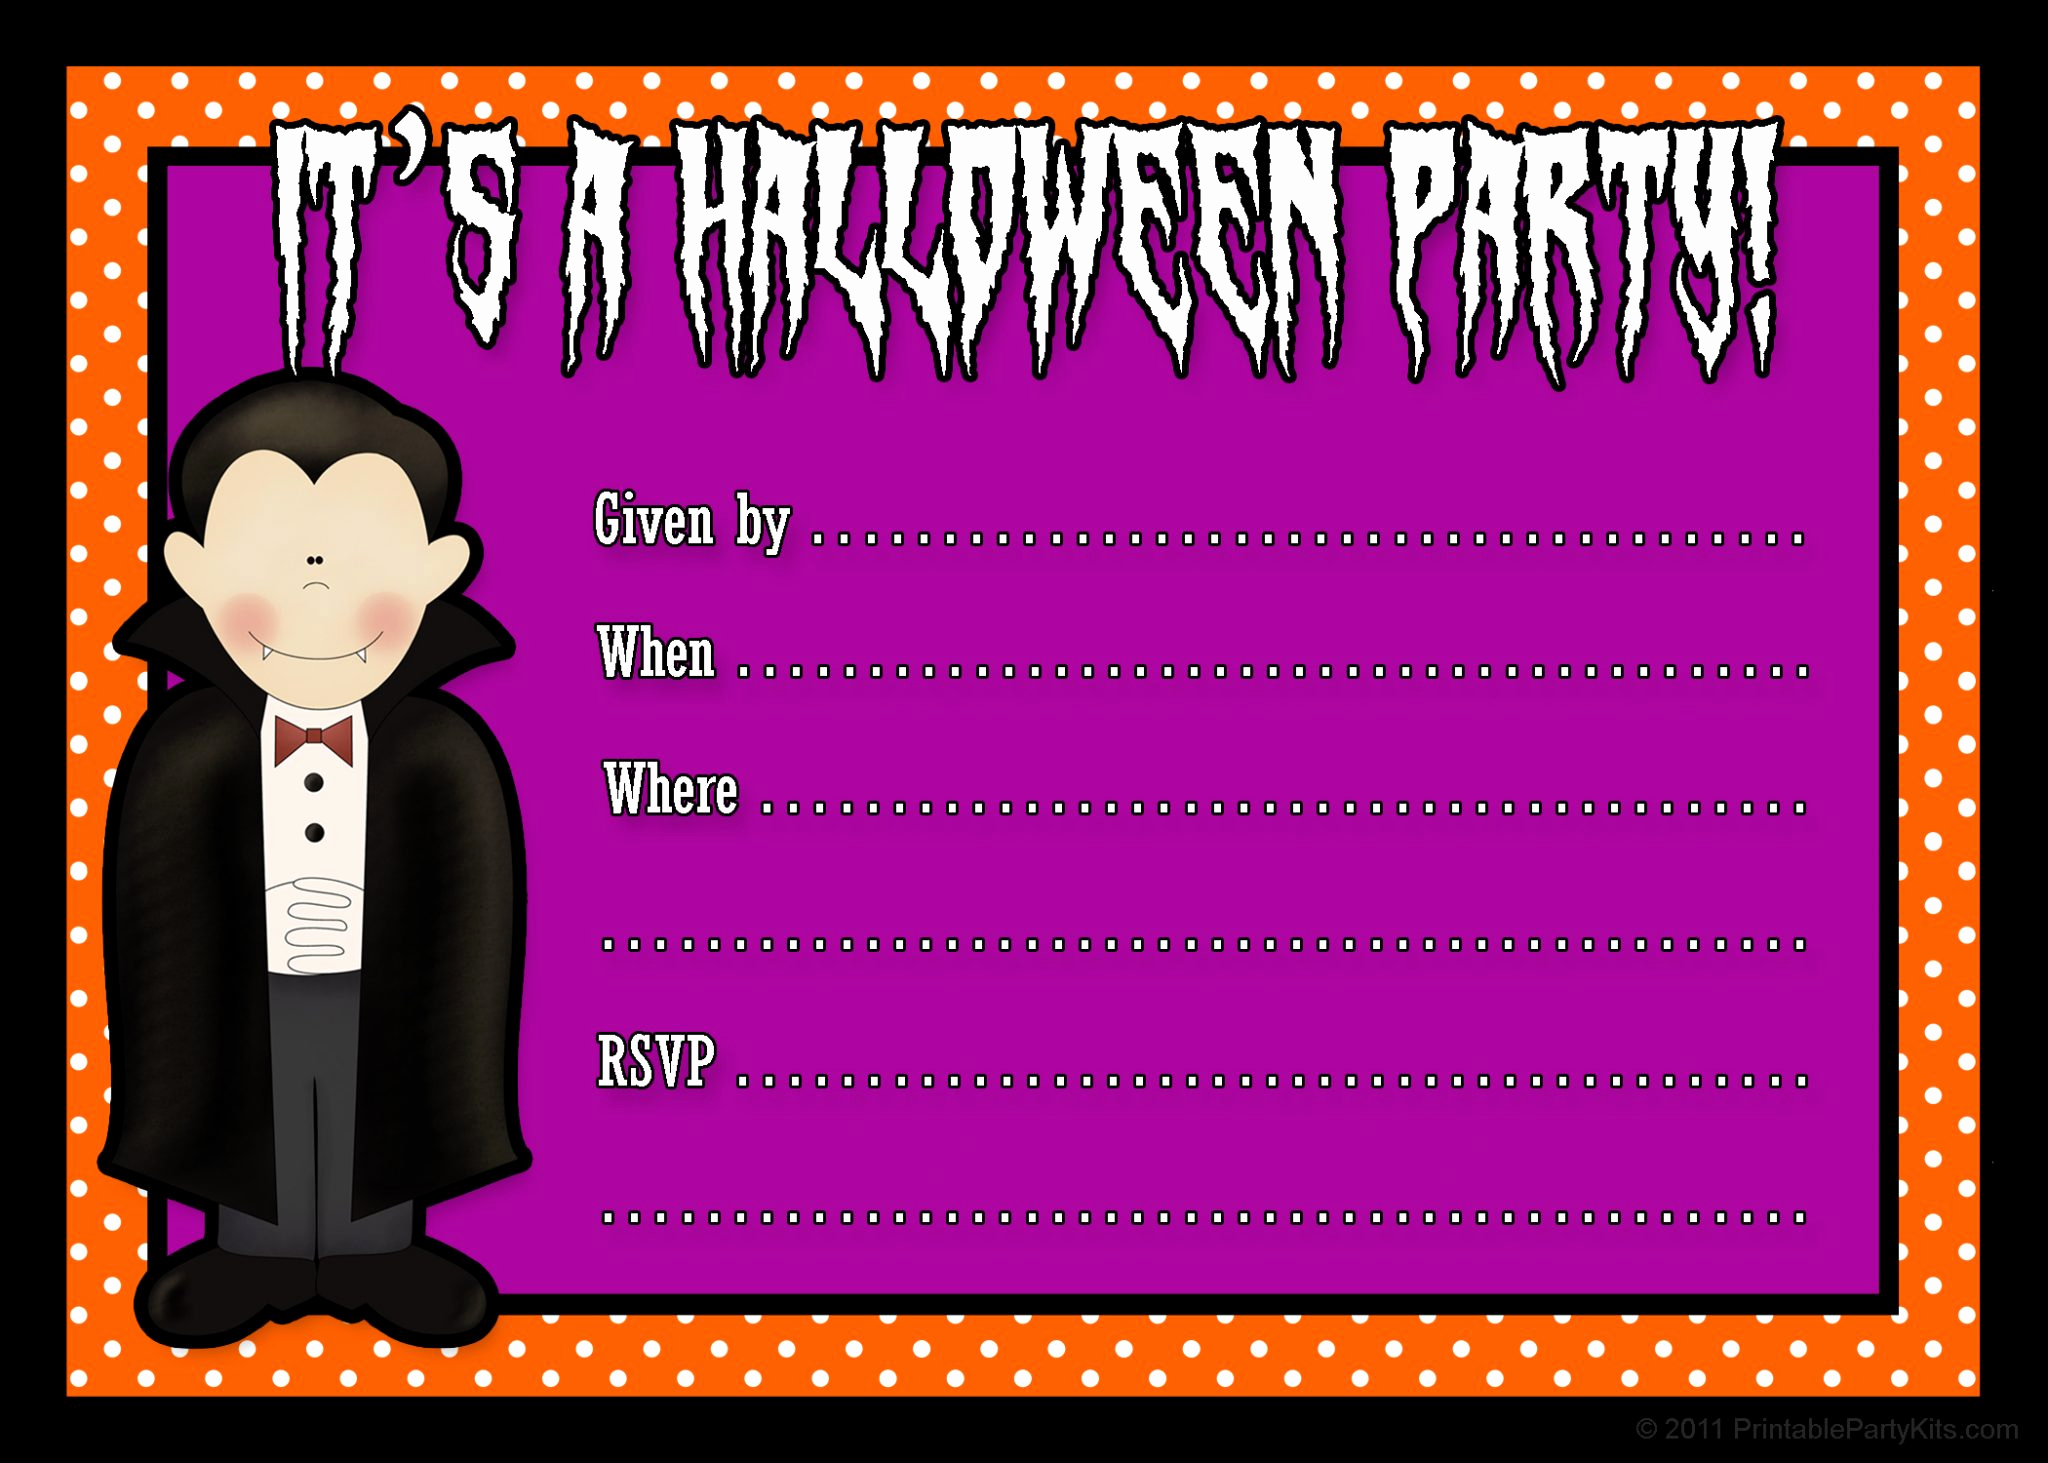 Halloween Party Invitation Template Best Of Free Printable Halloween Party Invites